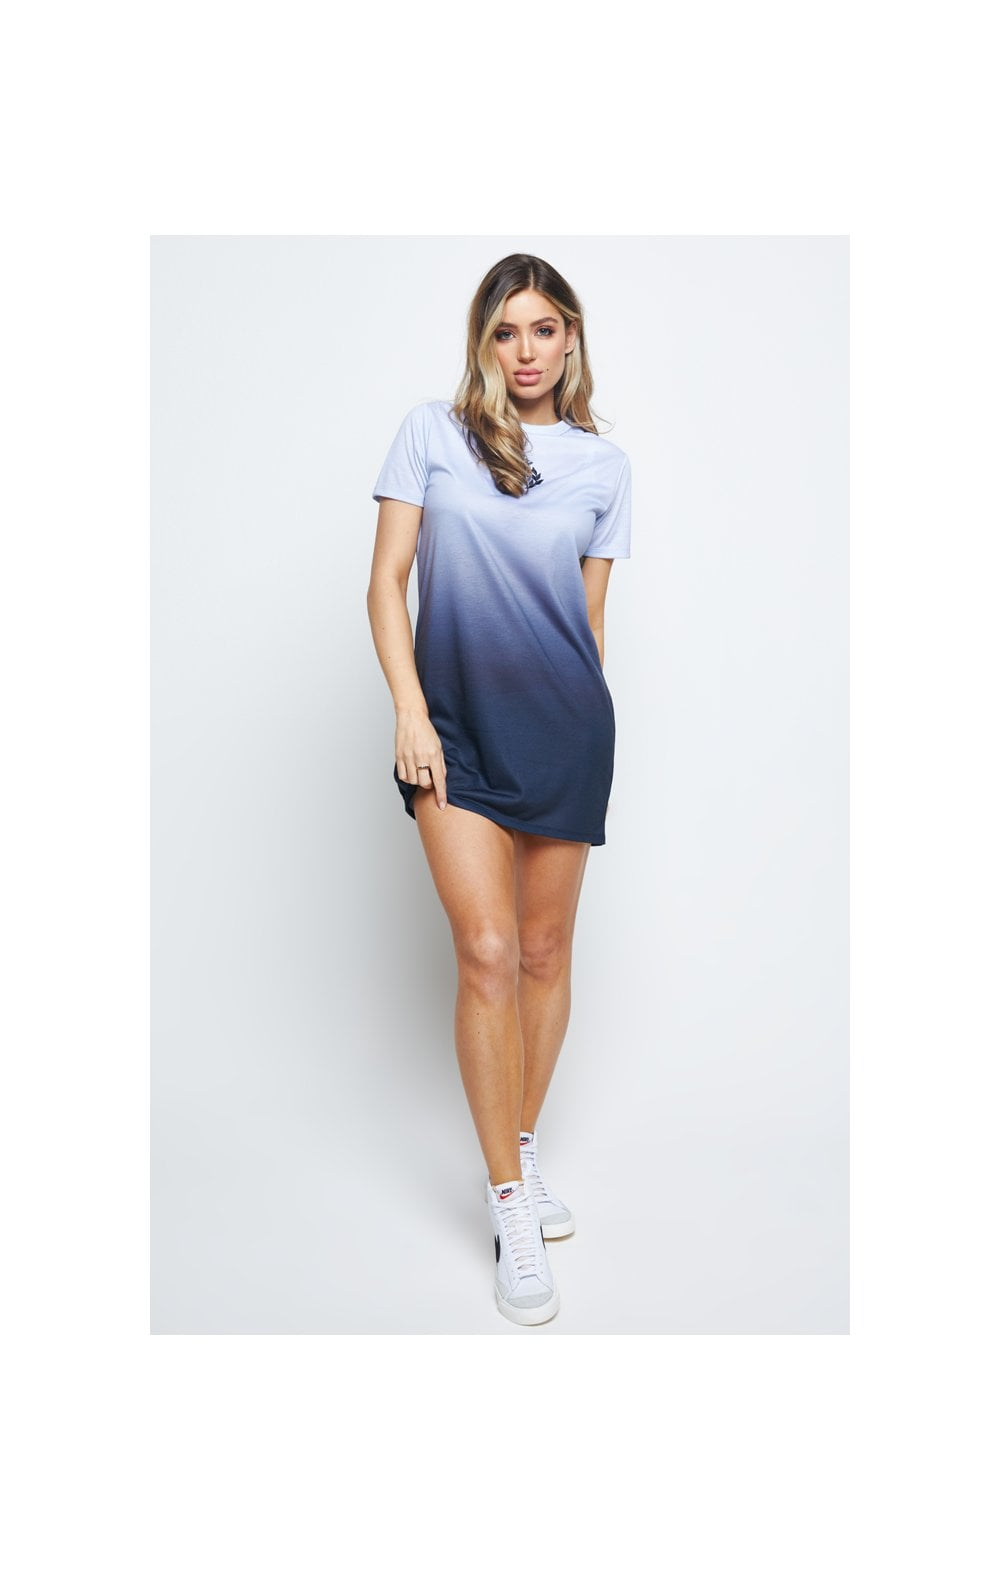 SikSilk Gravity Fade Tee Dress - Navy & Grey (2)